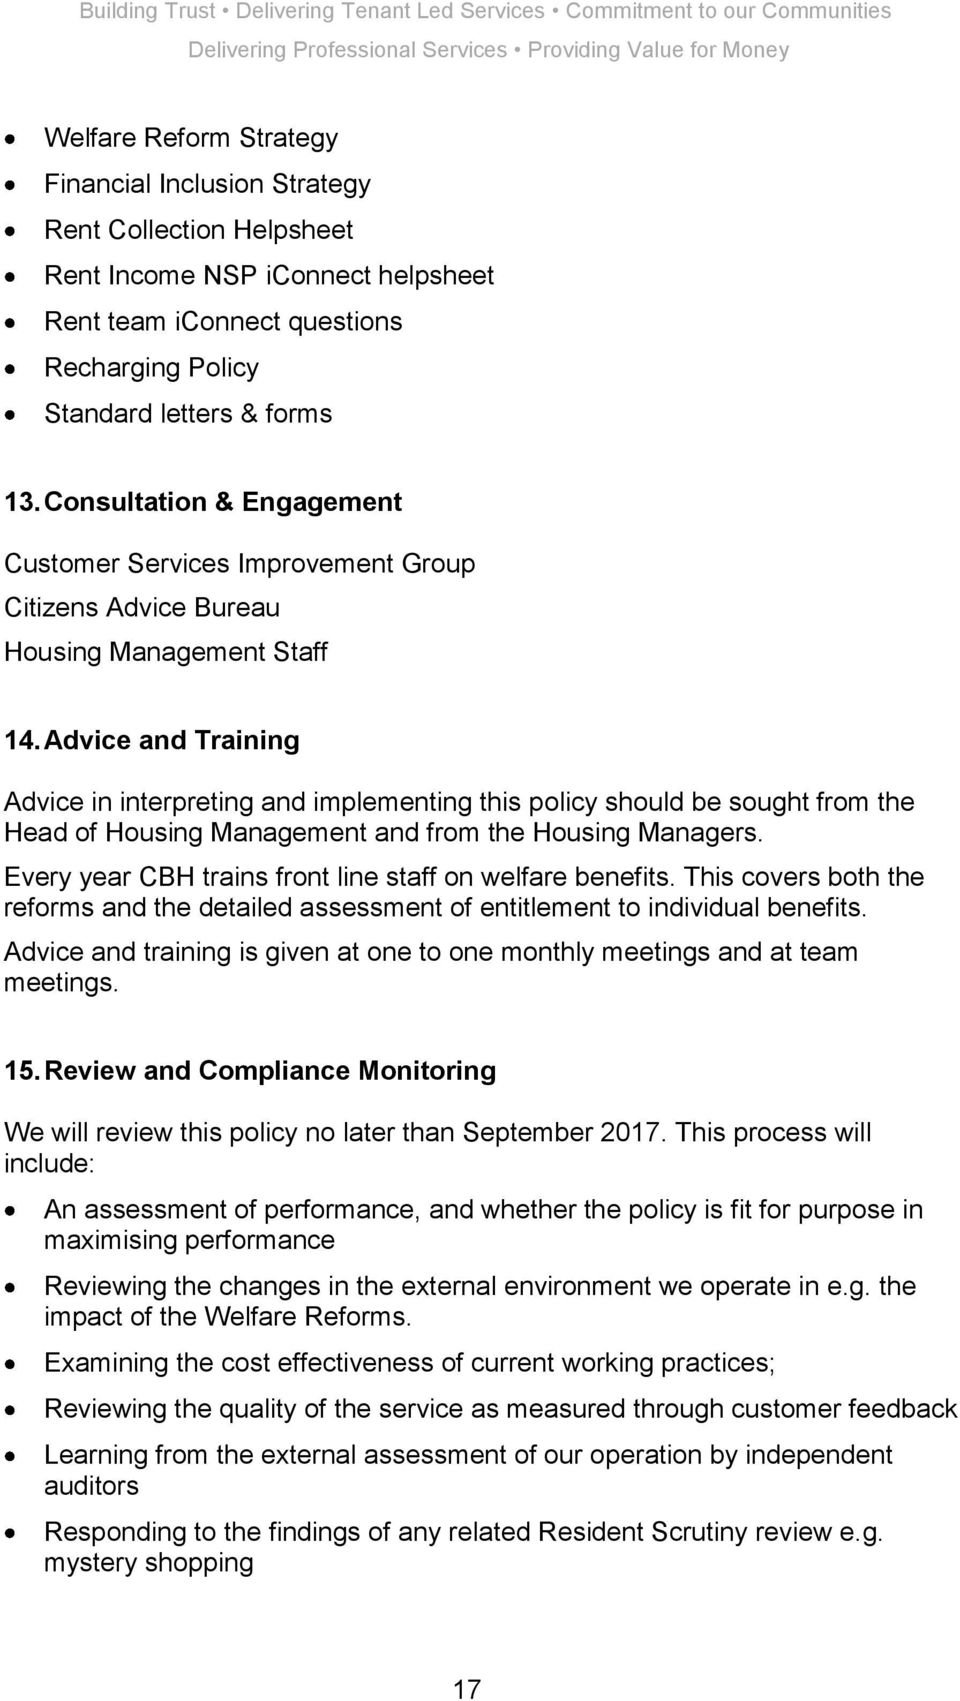 Advice and Training Advice in interpreting and implementing this policy should be sought from the Head of Housing Management and from the Housing Managers.